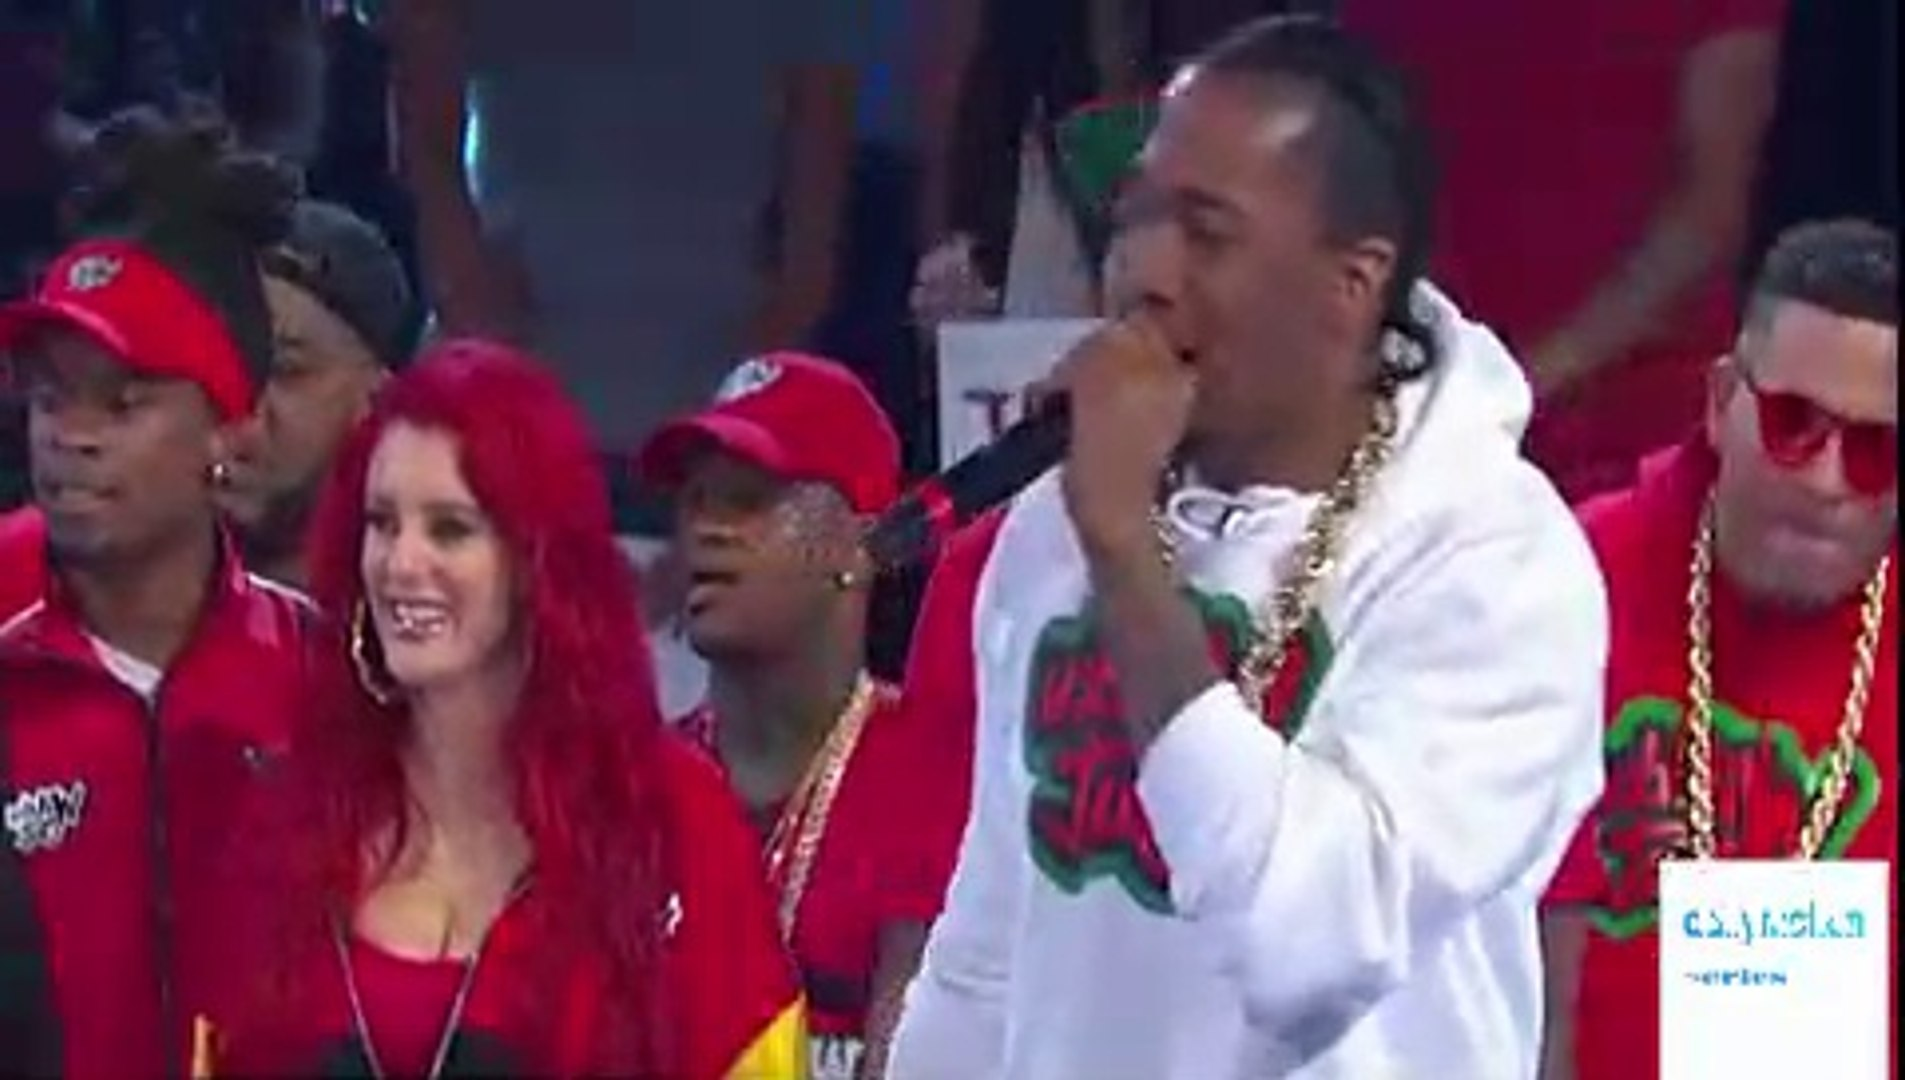 Nick Cannon Presents: Wild 'N Out - S013 E 7 - O.T Genasis / Nate Robinson| Nick Cannon Present